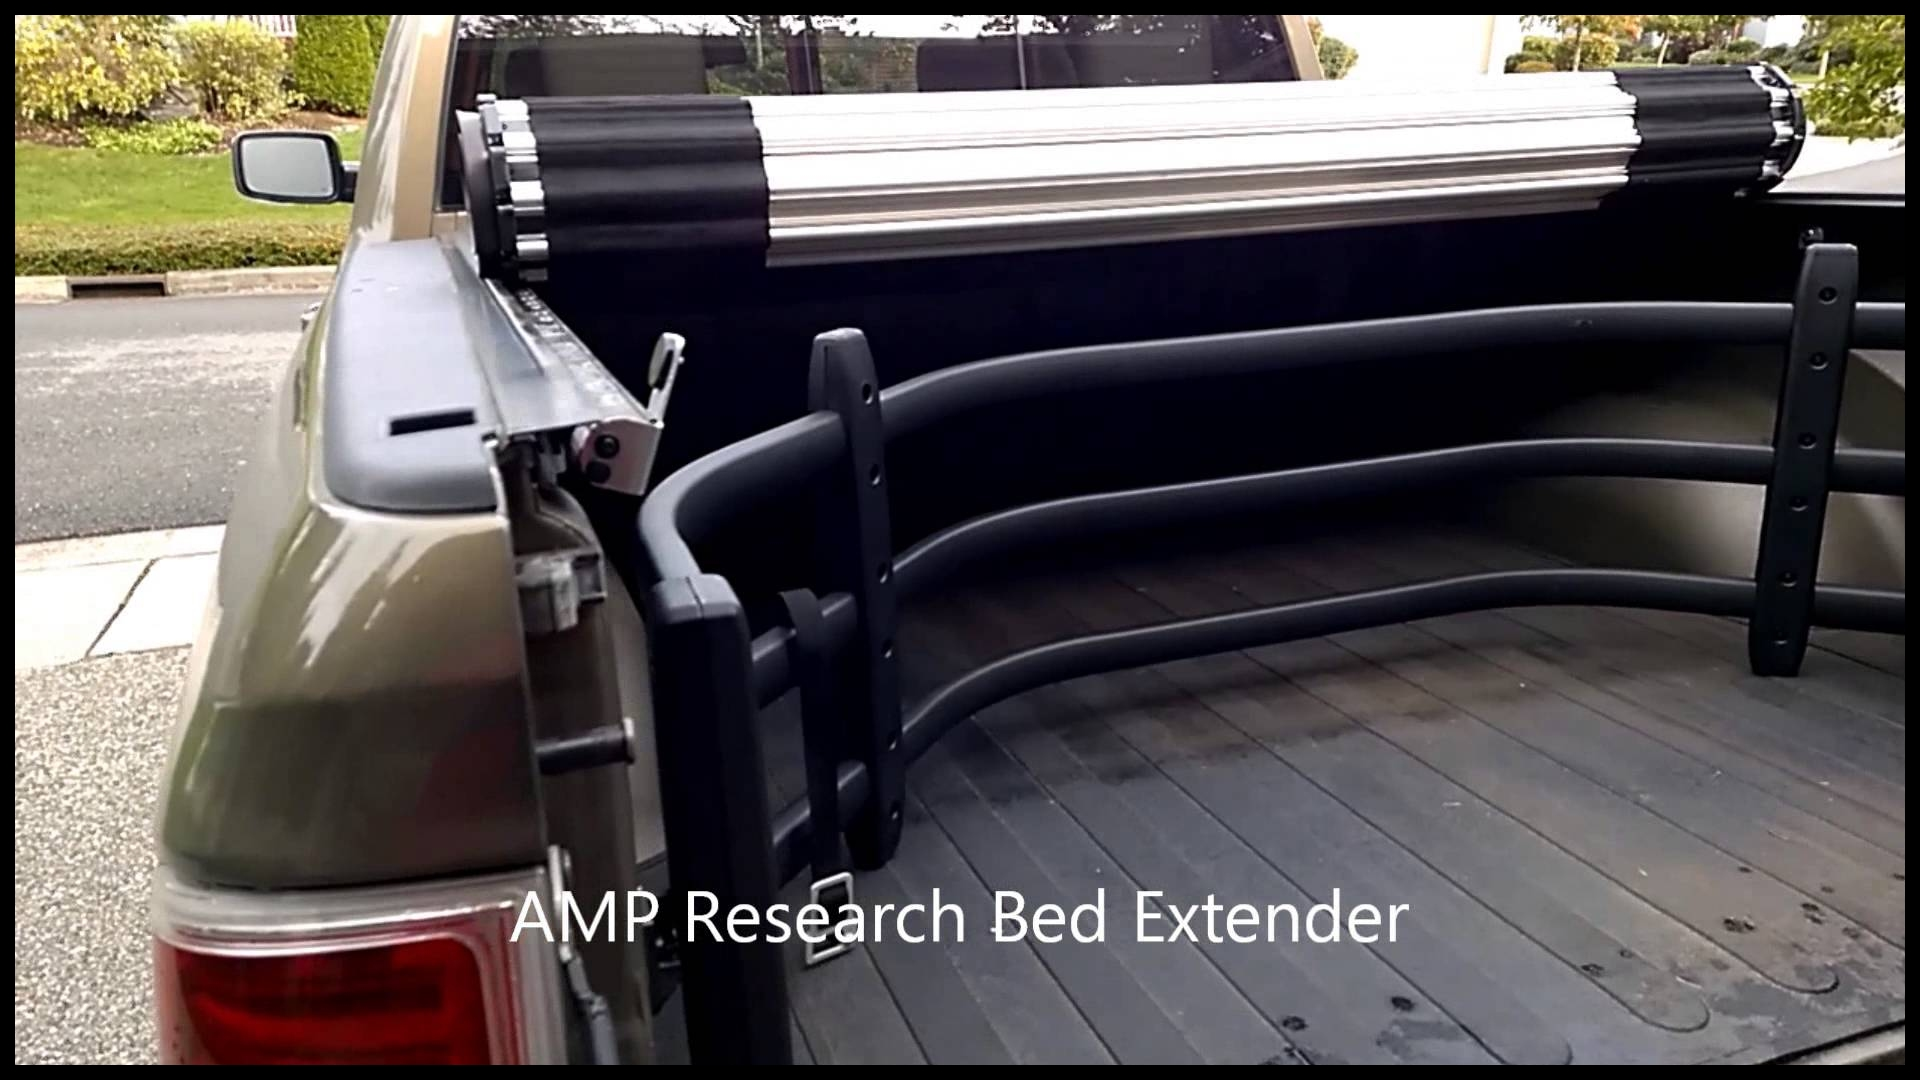 BAK Industries Roll X Tonneau Cover & AMP Research Bed Extender patibility fix